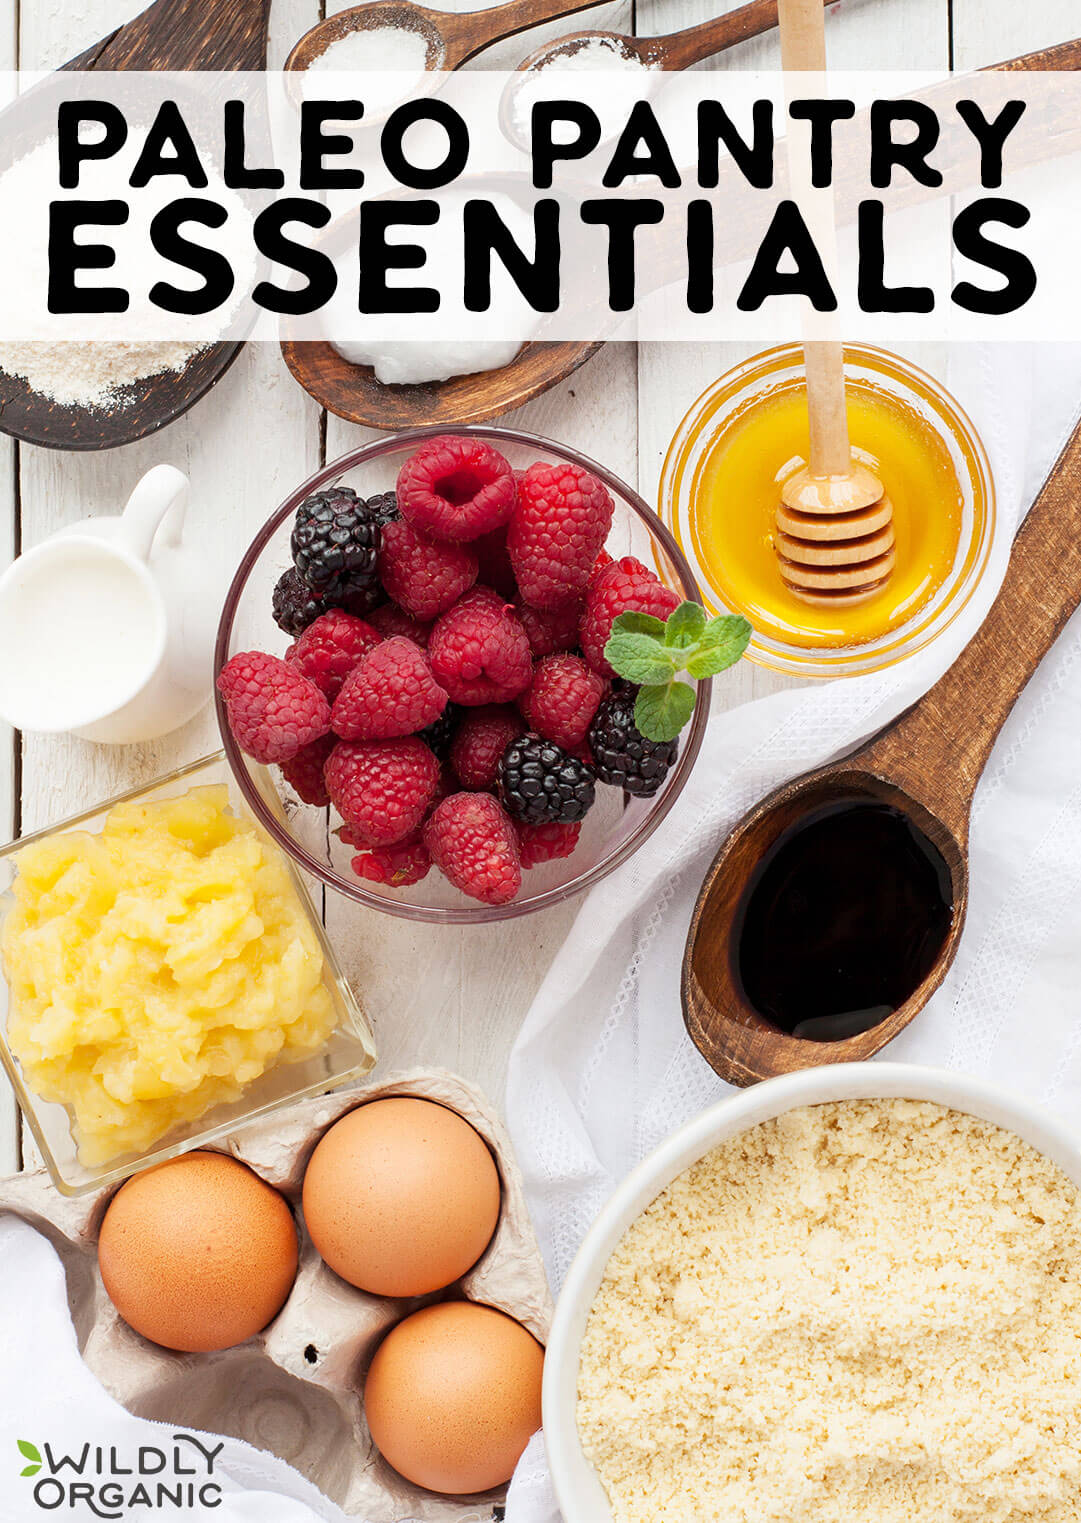 Photo of different paleo pantry essentials in bowls and on spoons – almond flour, coconut flour, honey, coconut oil